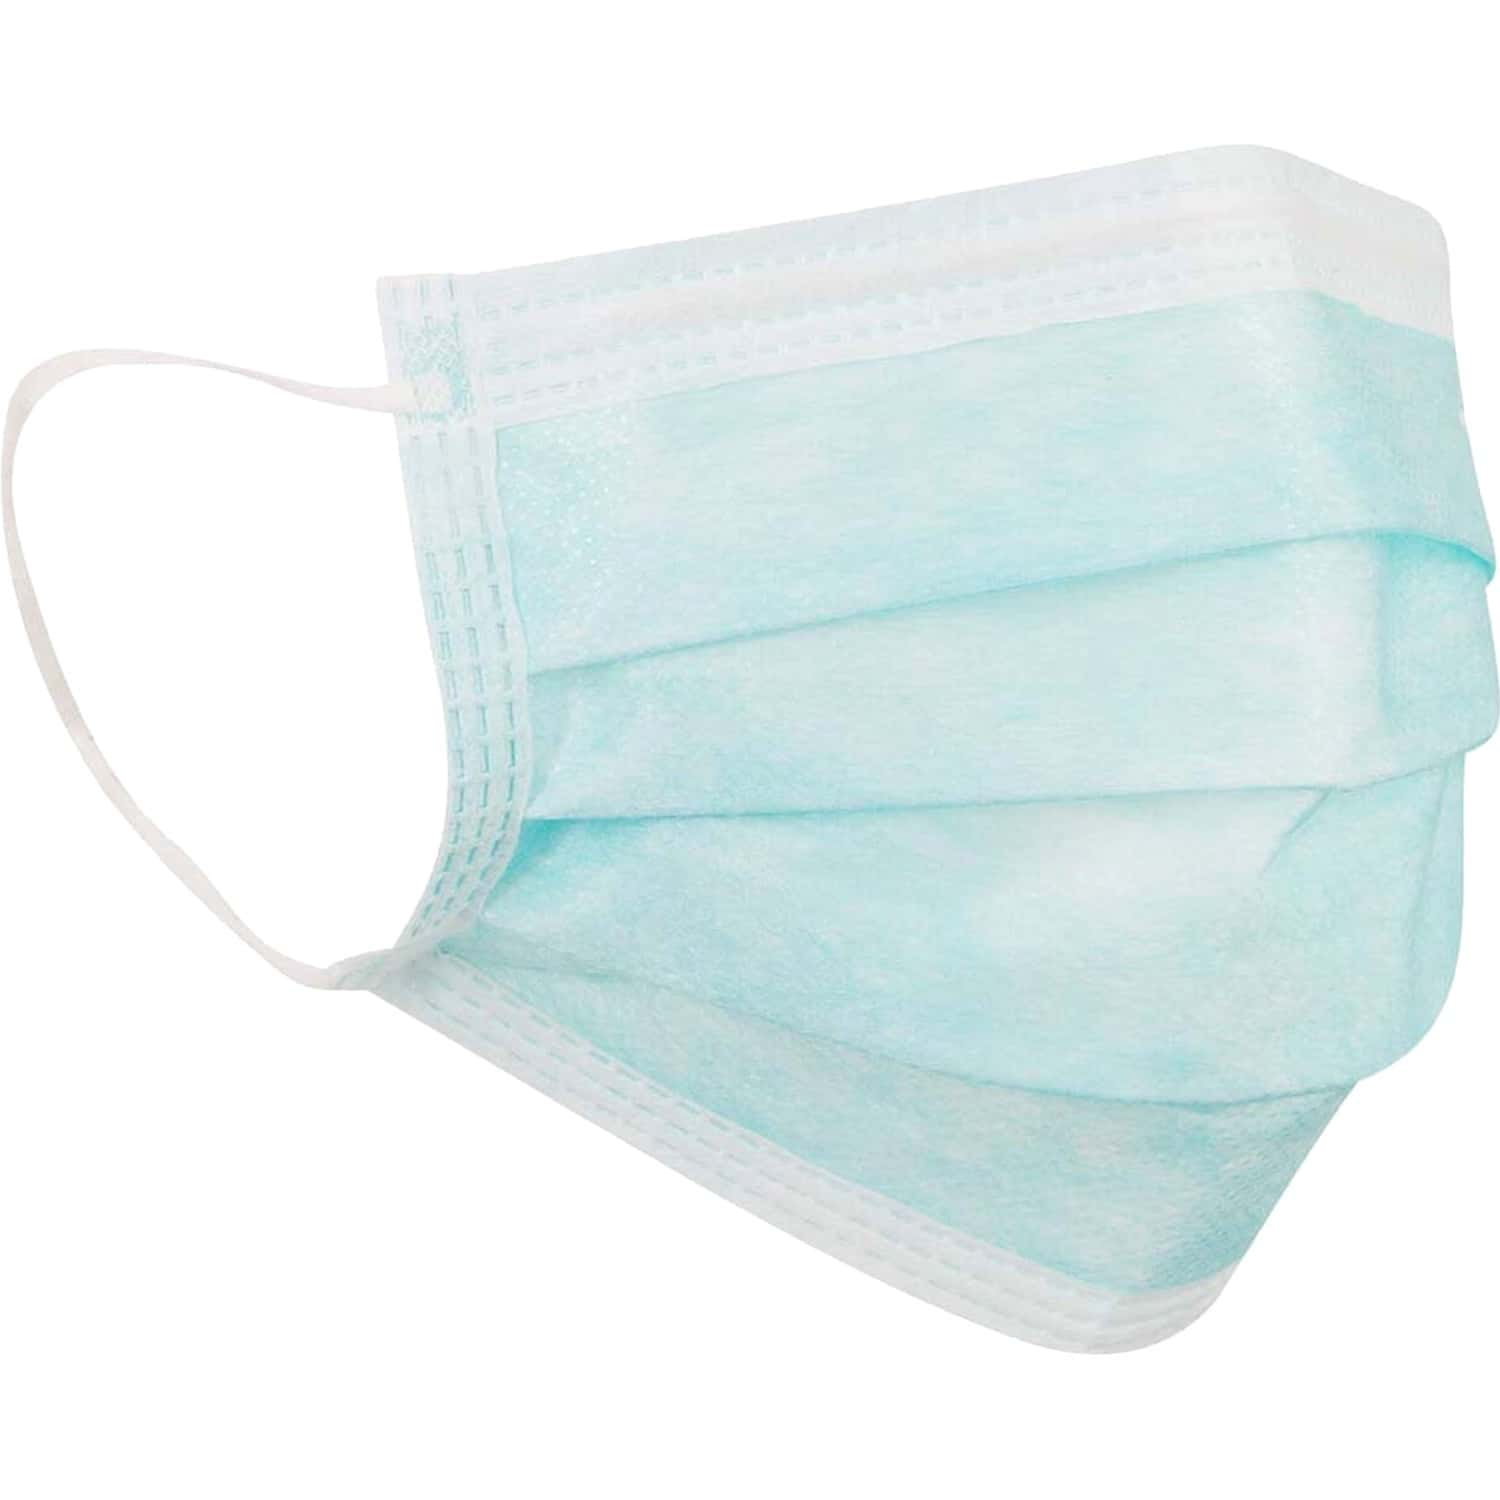 Surgical Face Masks - 3ply 1